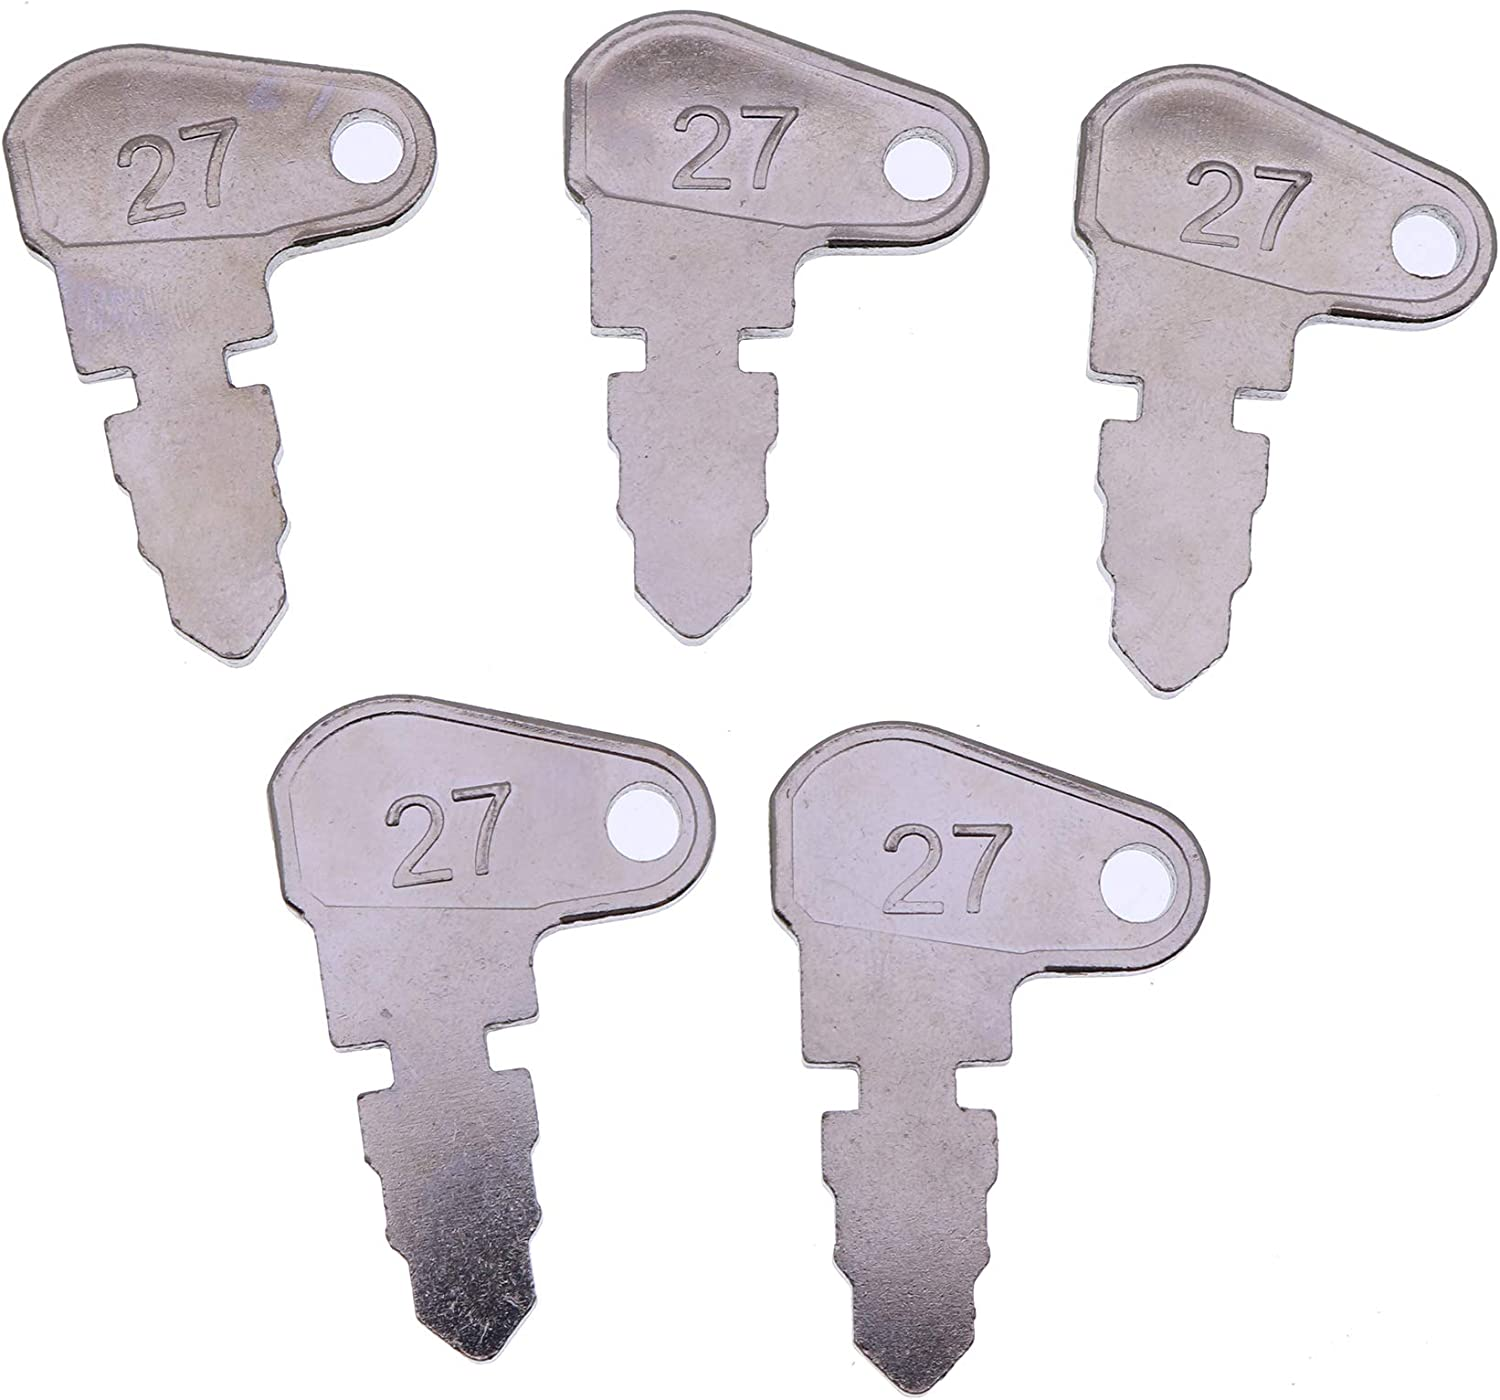 YQI 5PCS B17575 Key for John Deere Bulldozer 450 Loader 350 400 Tractor 300 Forklift 380 480 480A